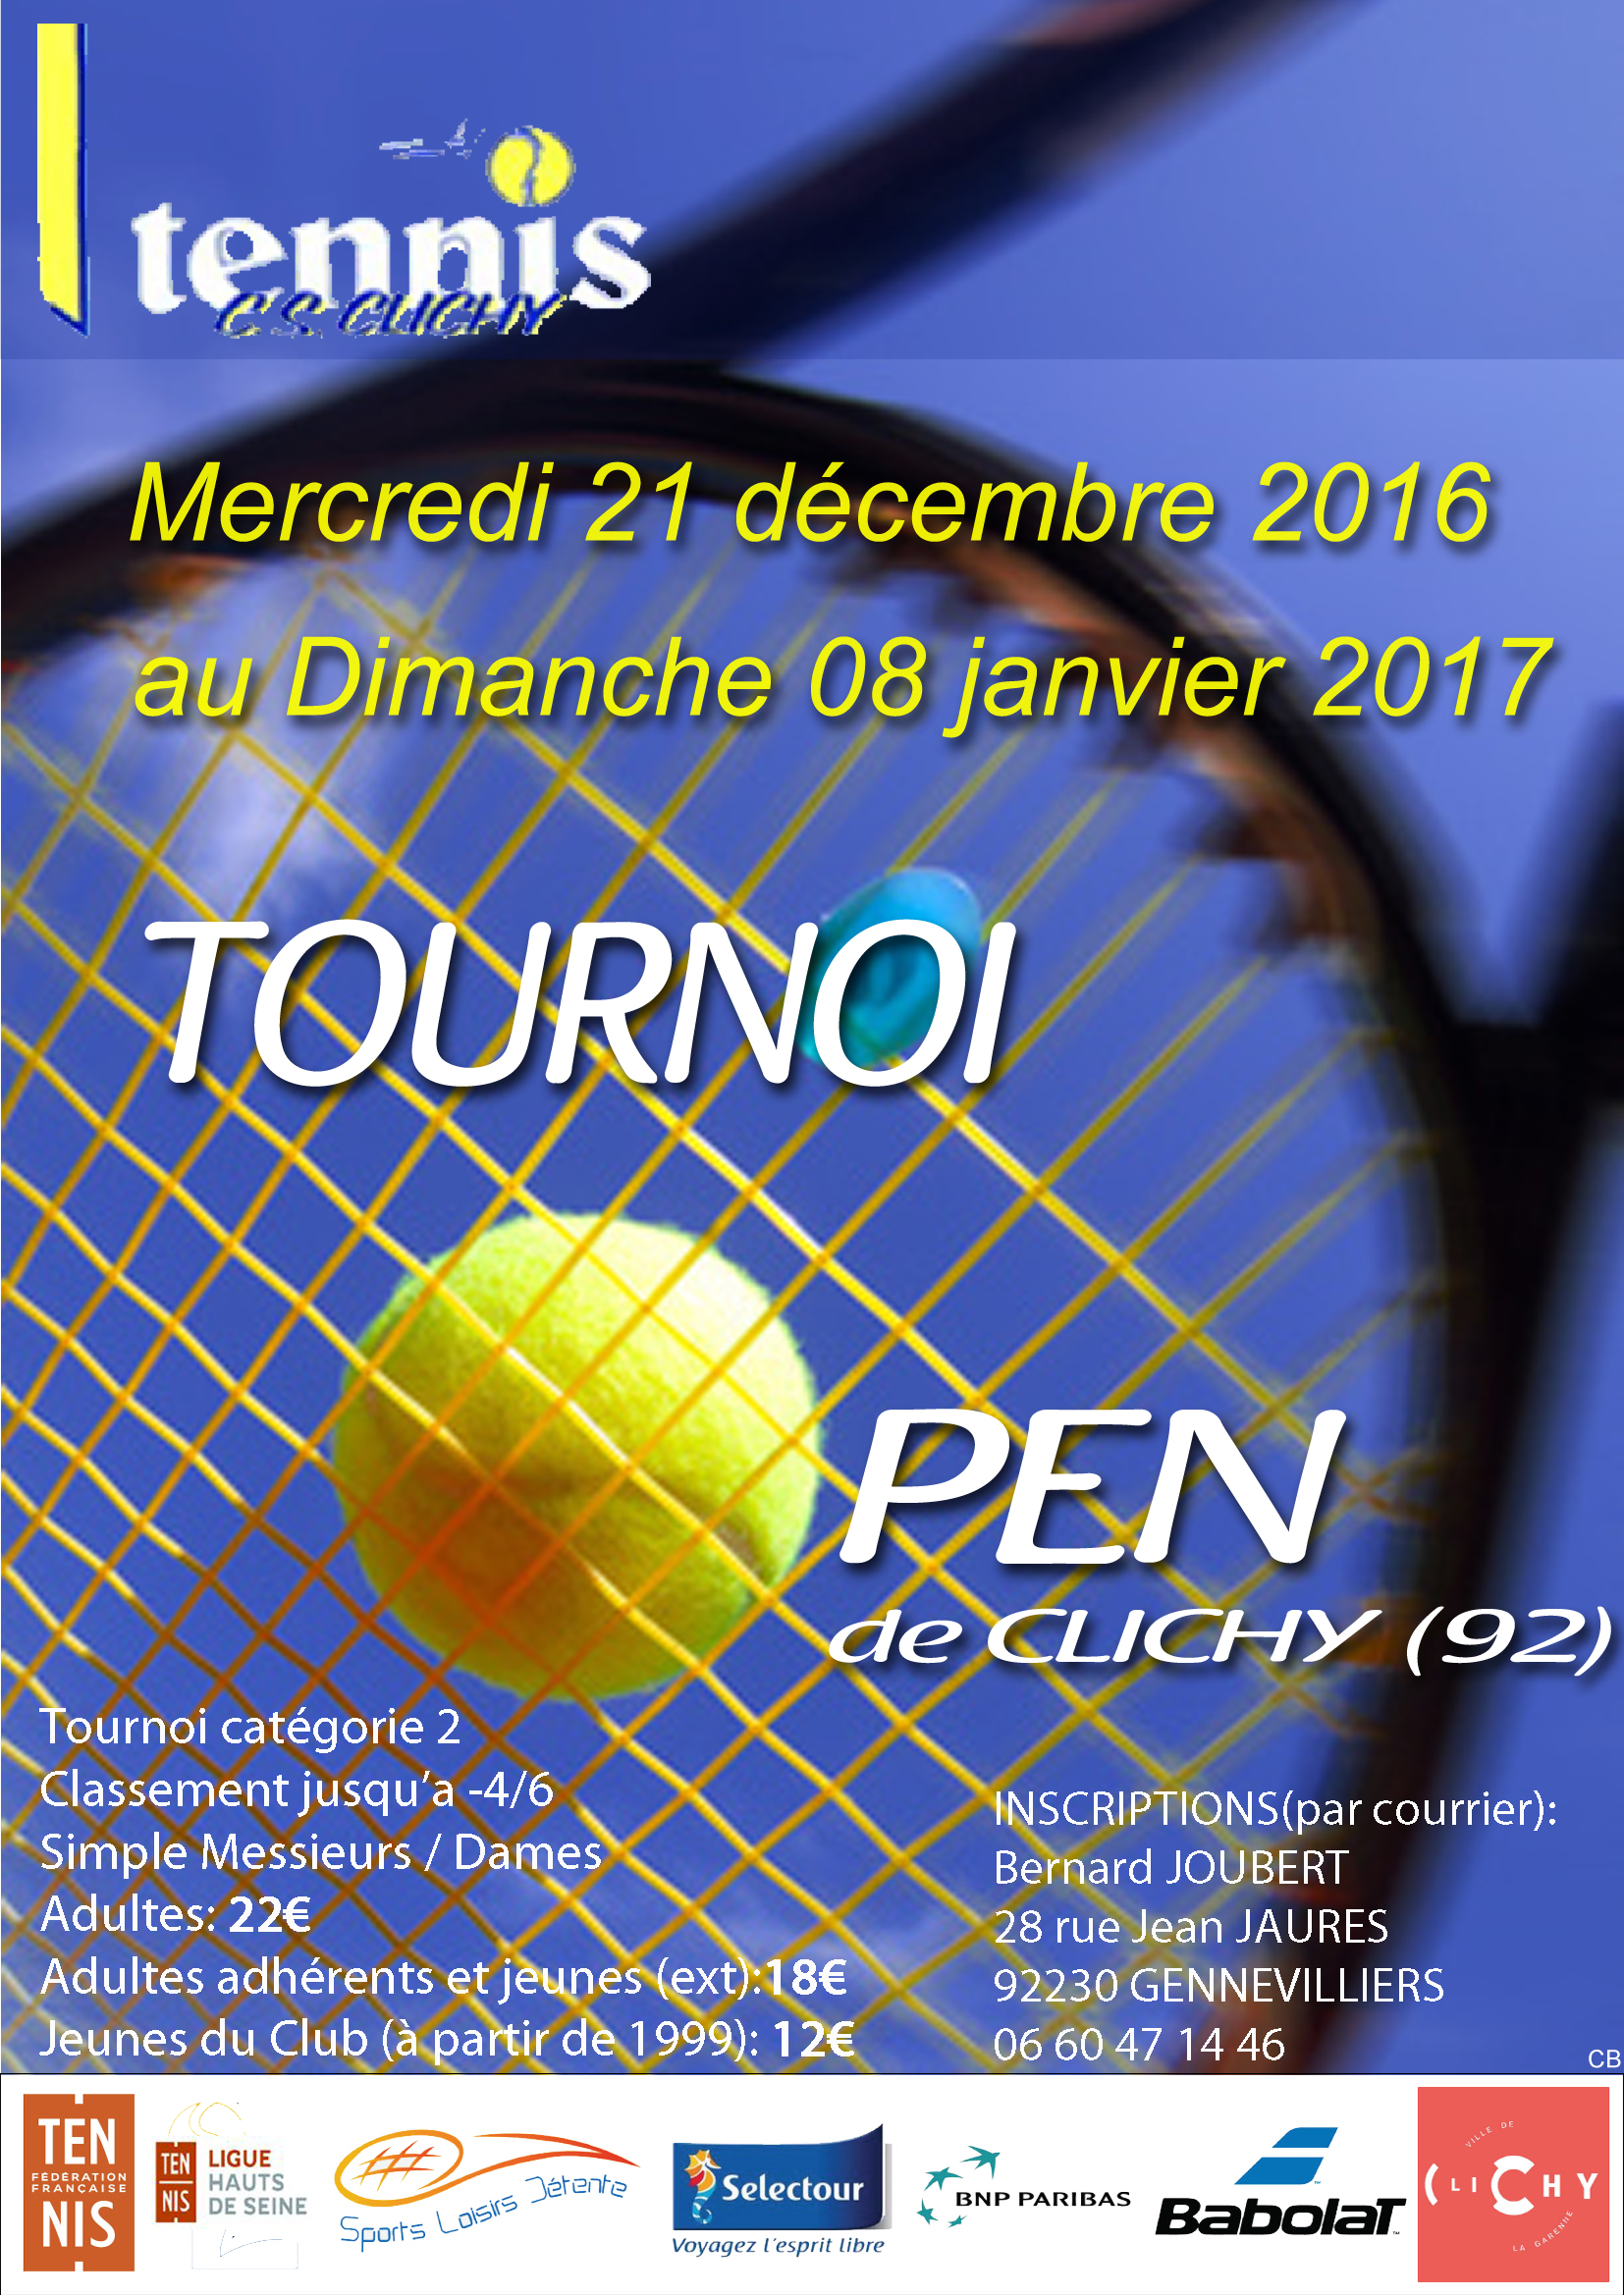 tournoiopen2017 modifi 13